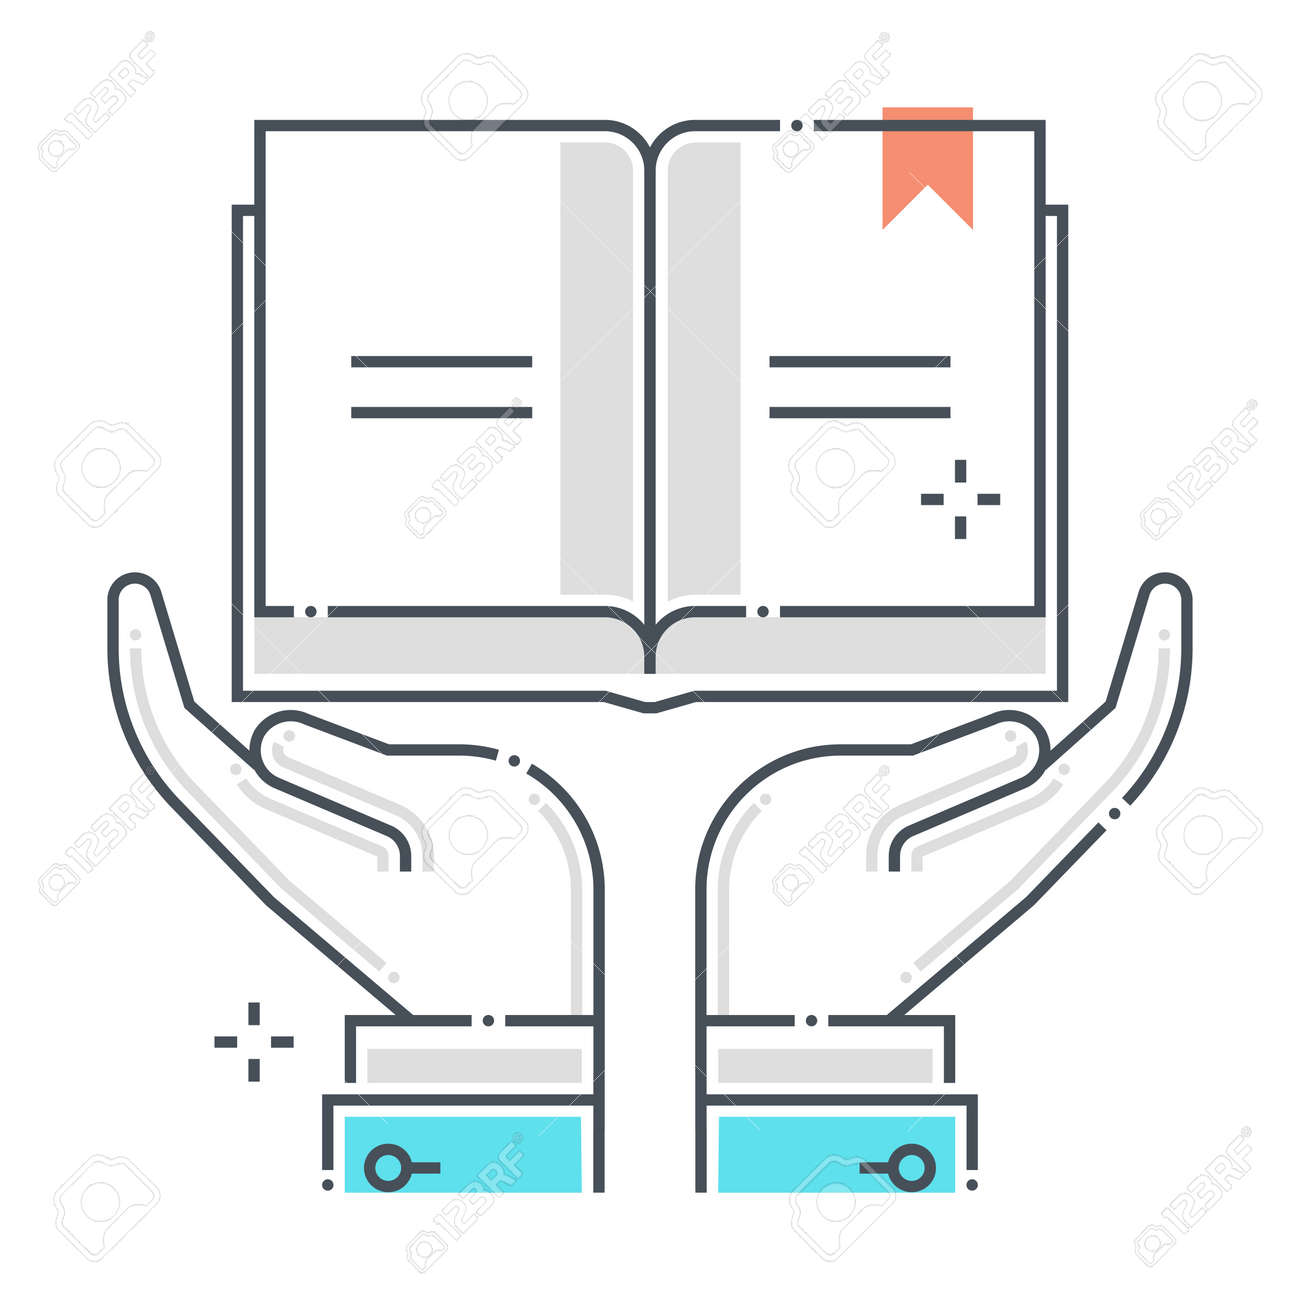 Intellectual property related color line vector icon, illustration. The icon is about assurance, book, intellectual property, ownership. The composition is infinitely scalable. - 163695981